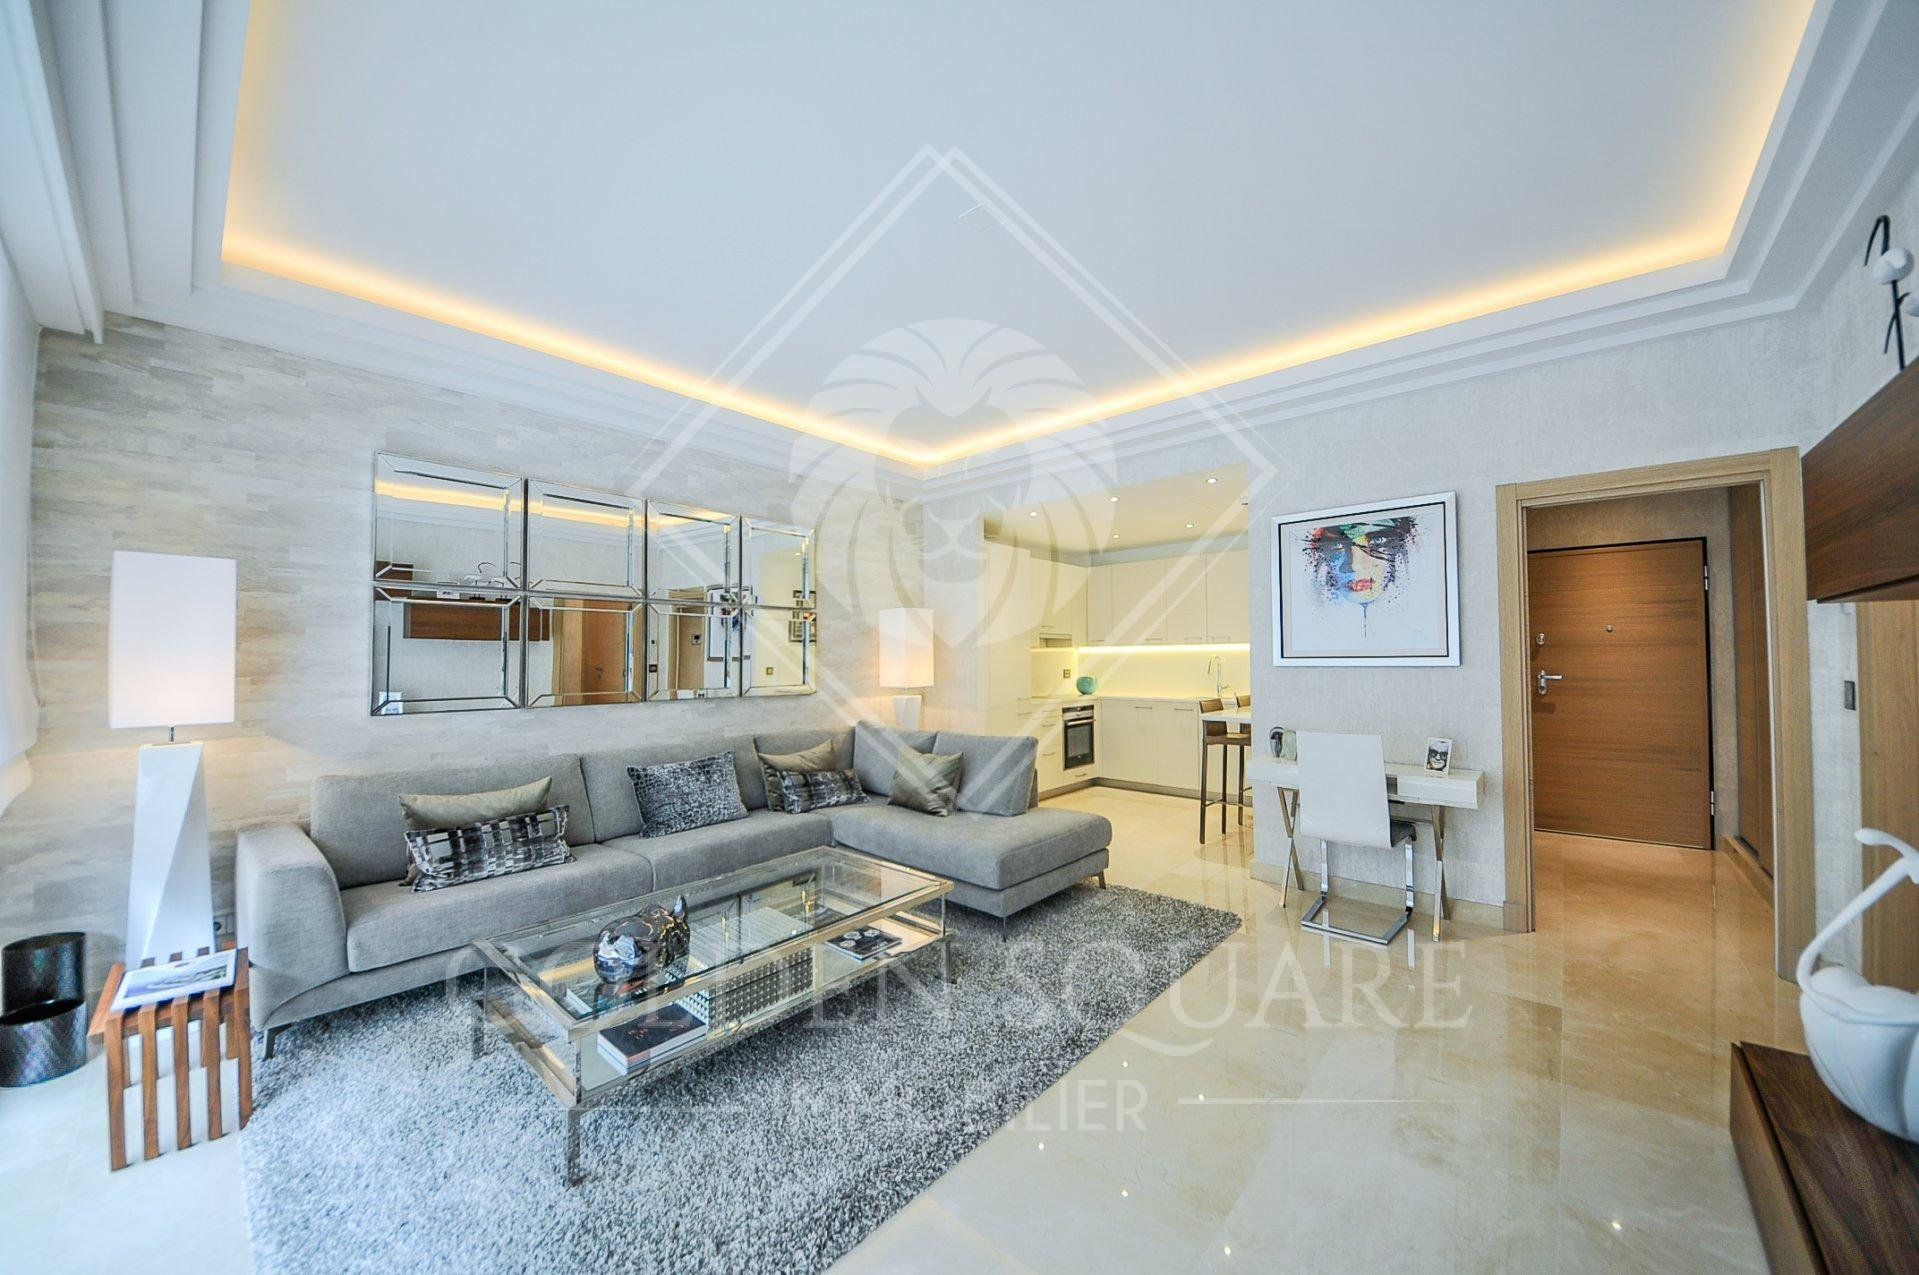 FONTVIELLE - LUXURIOUS 1 BEDROOM